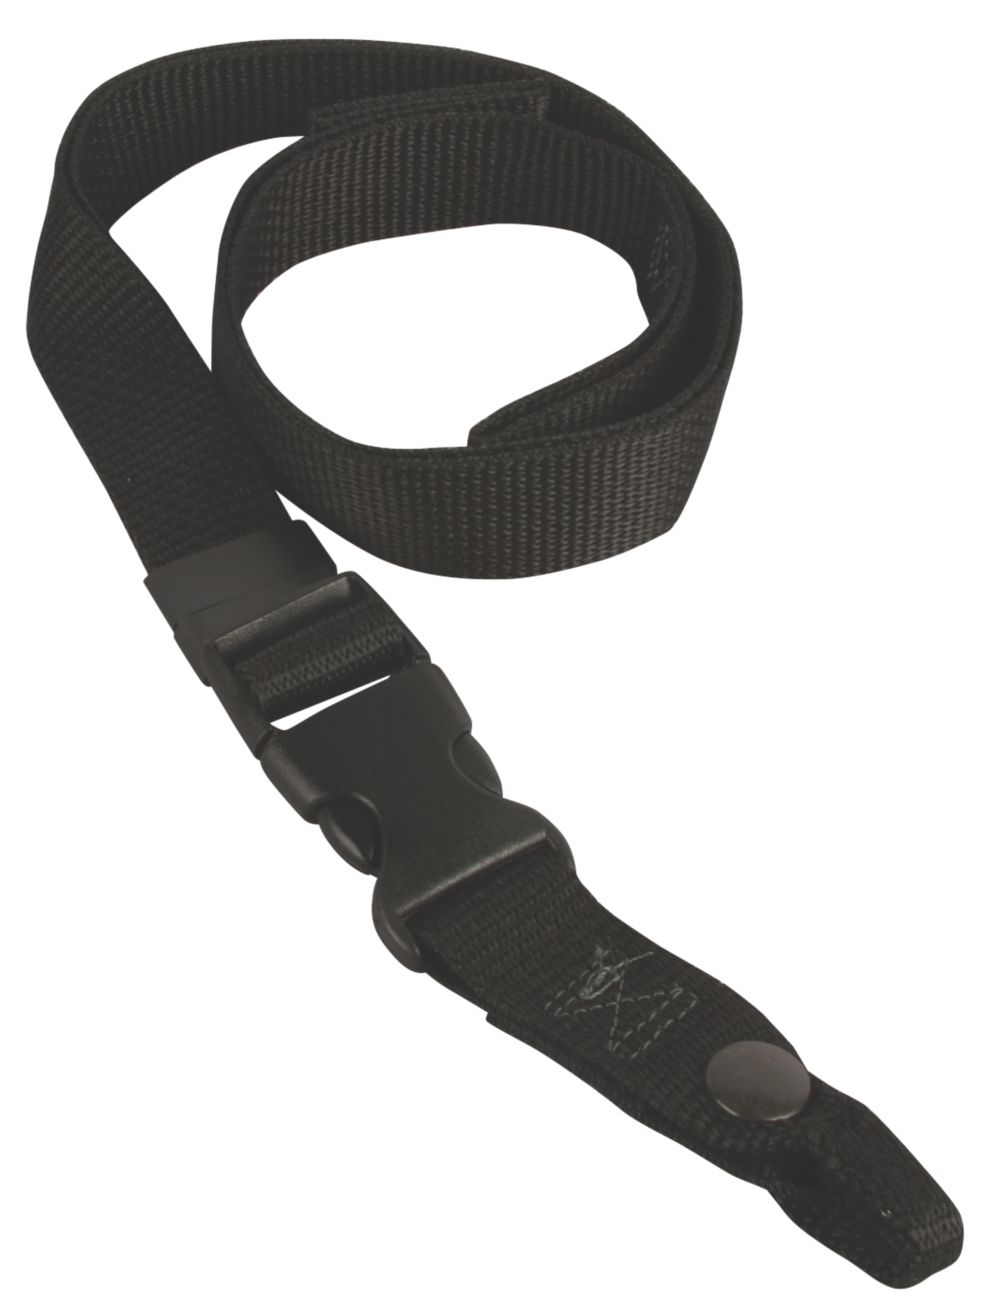 MK-1 Single-Loop Crotch Strap